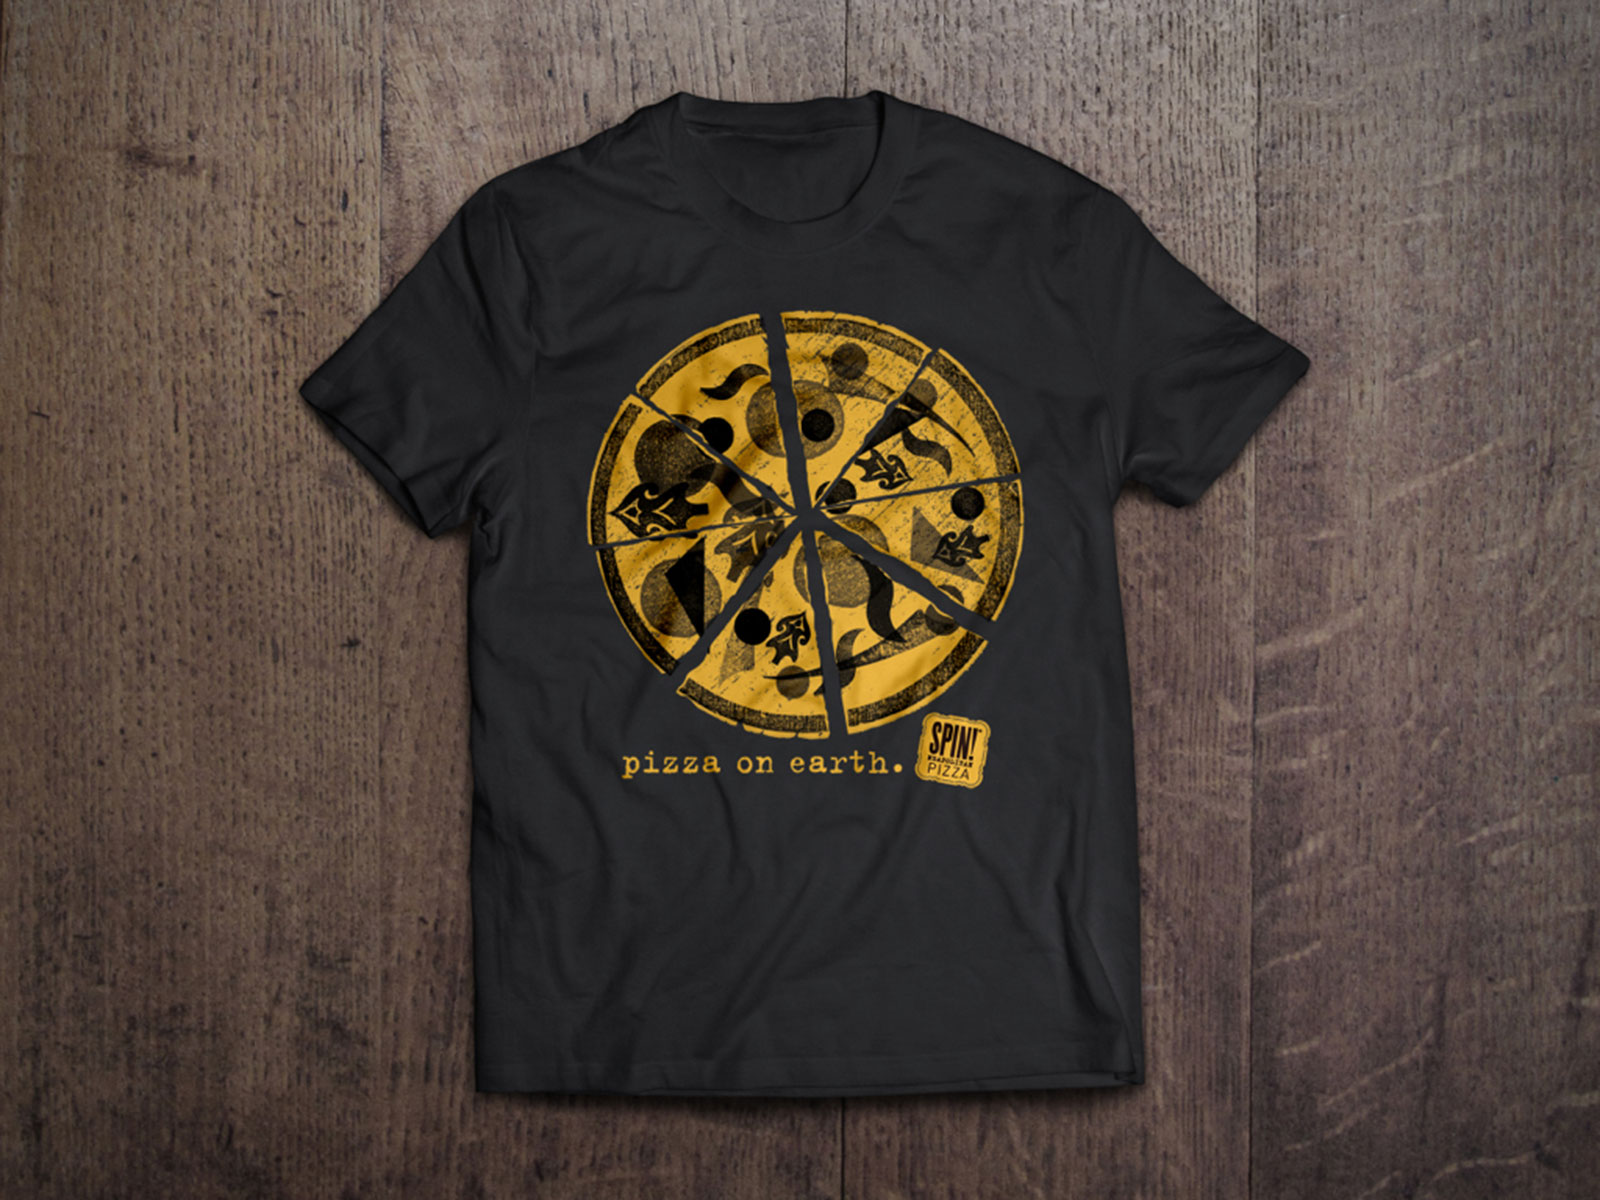 SPIN Pizza Tshirt